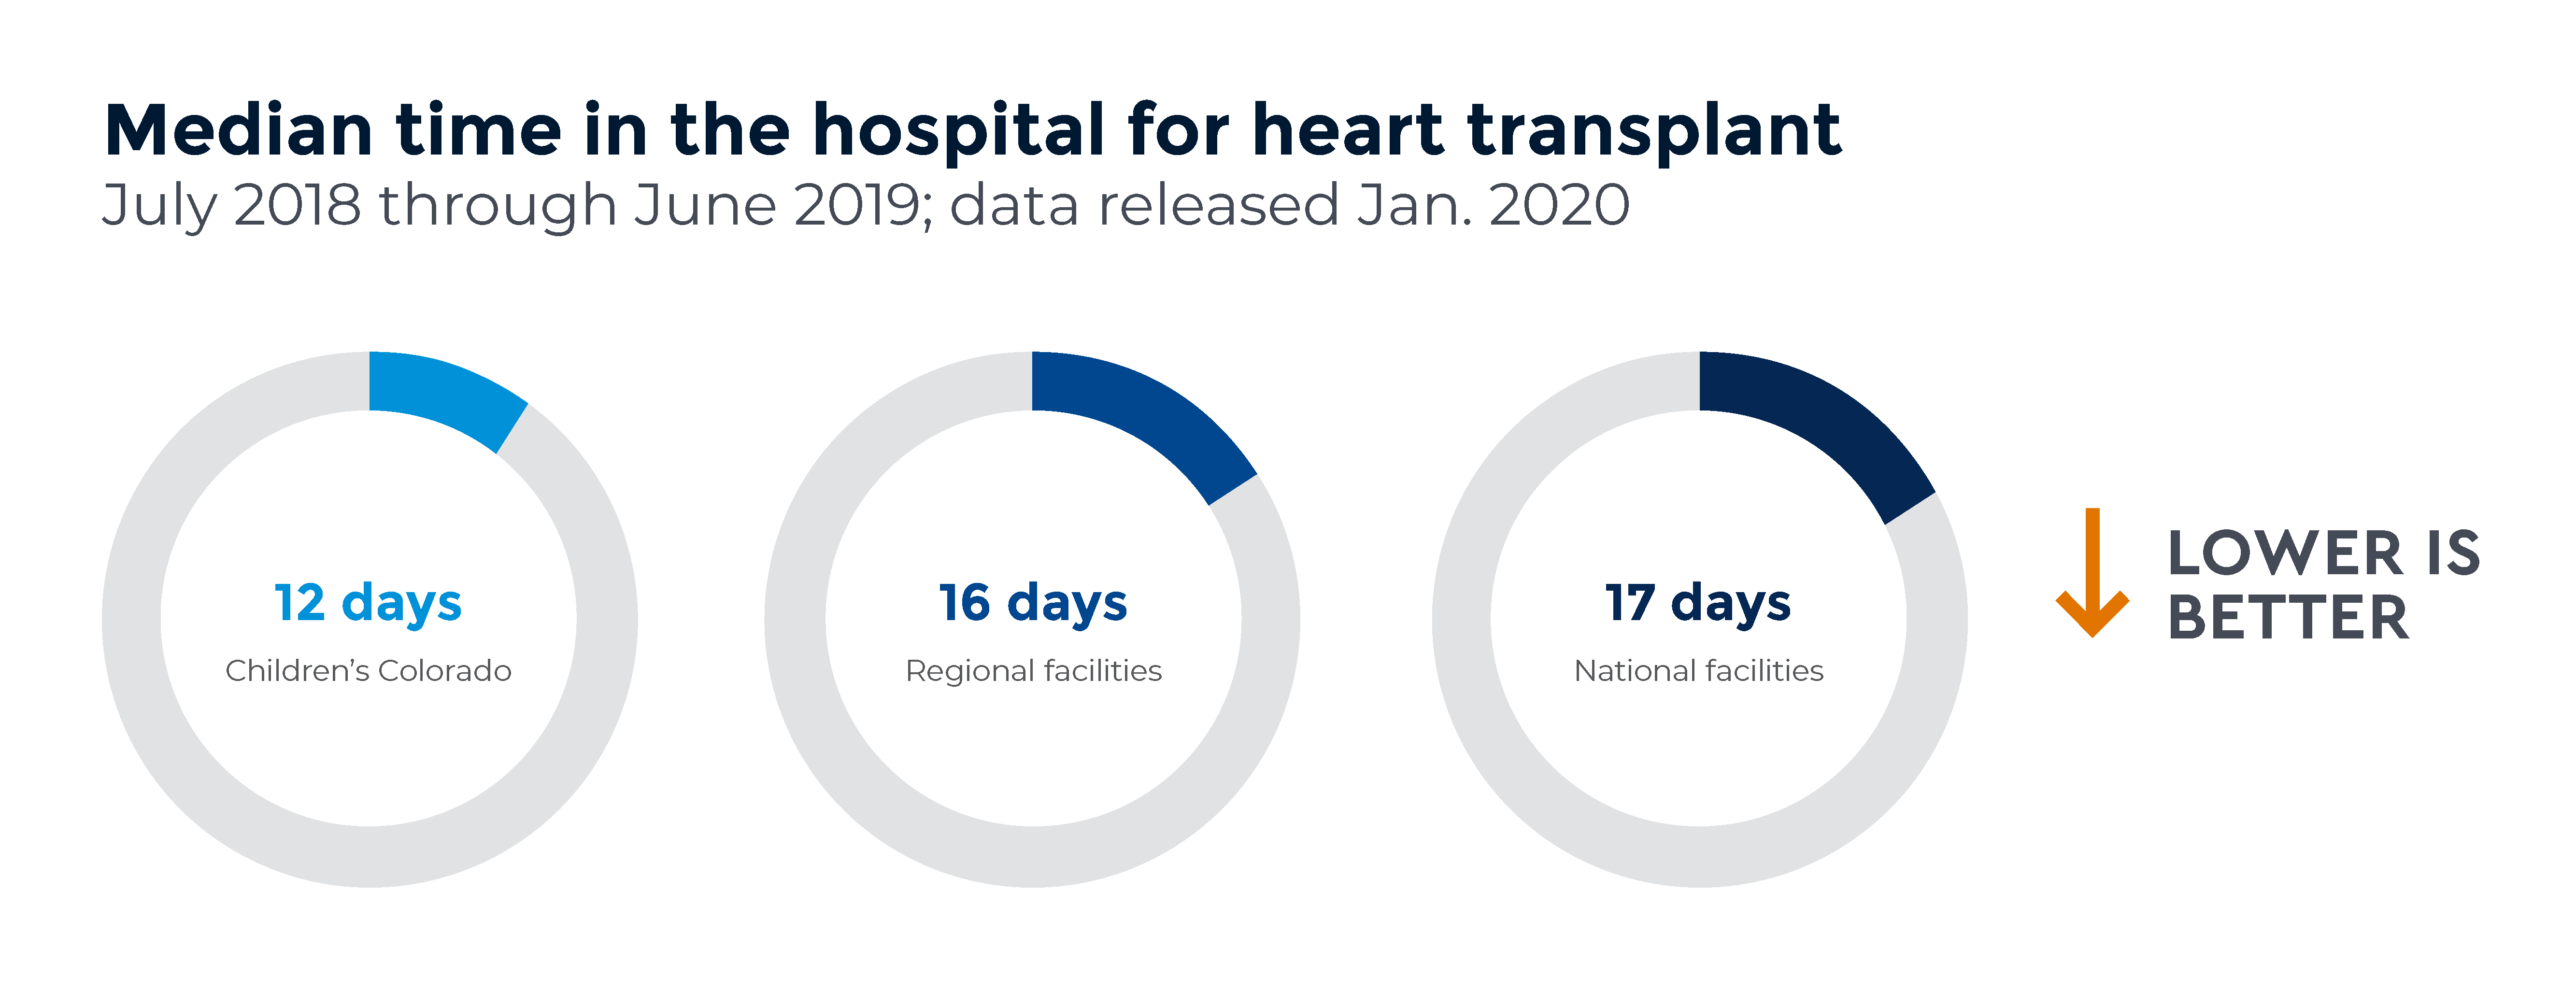 Graph comparing the median time in the hospital at Children's Colorado, regionally and nationally. Median time in hospital post-transplant: Children's Colorado = 12 days, Regional = 16 days, National = 17 days. Data from July 2018 through June 2019. Data released Jan. 2020